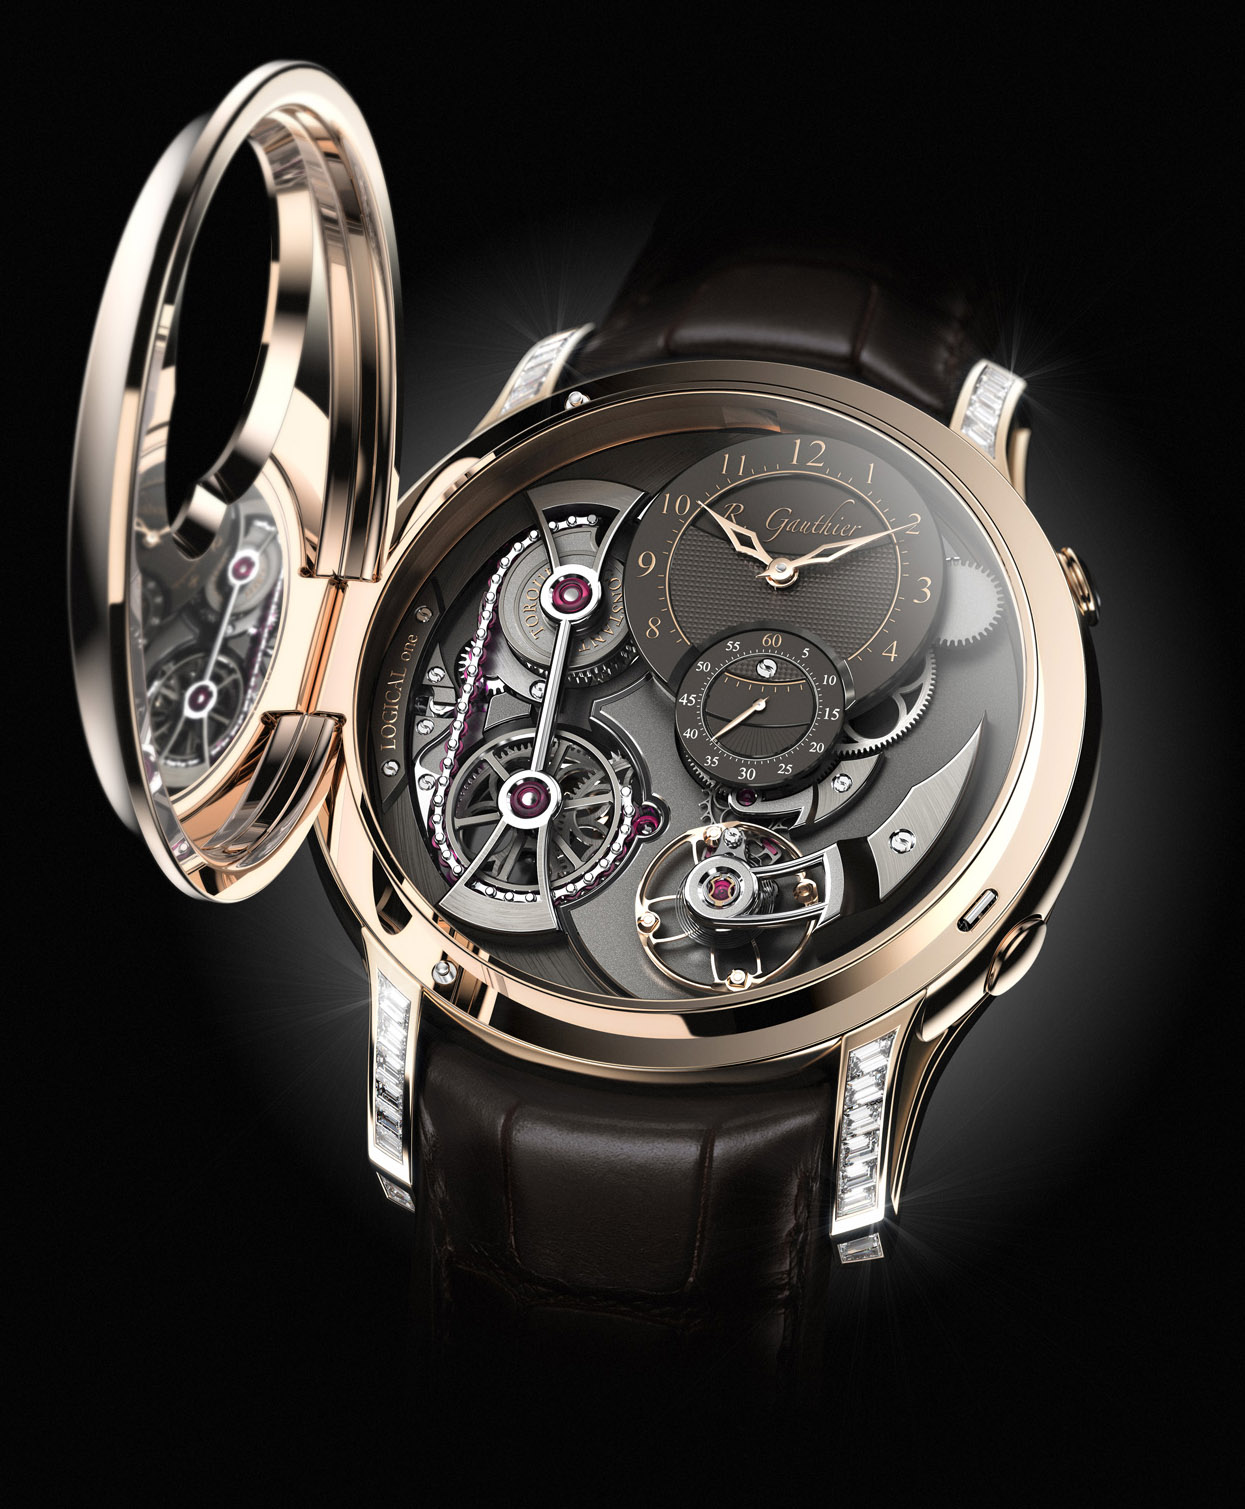 Romain Gauthier Logical One Secret - Baselworld Release